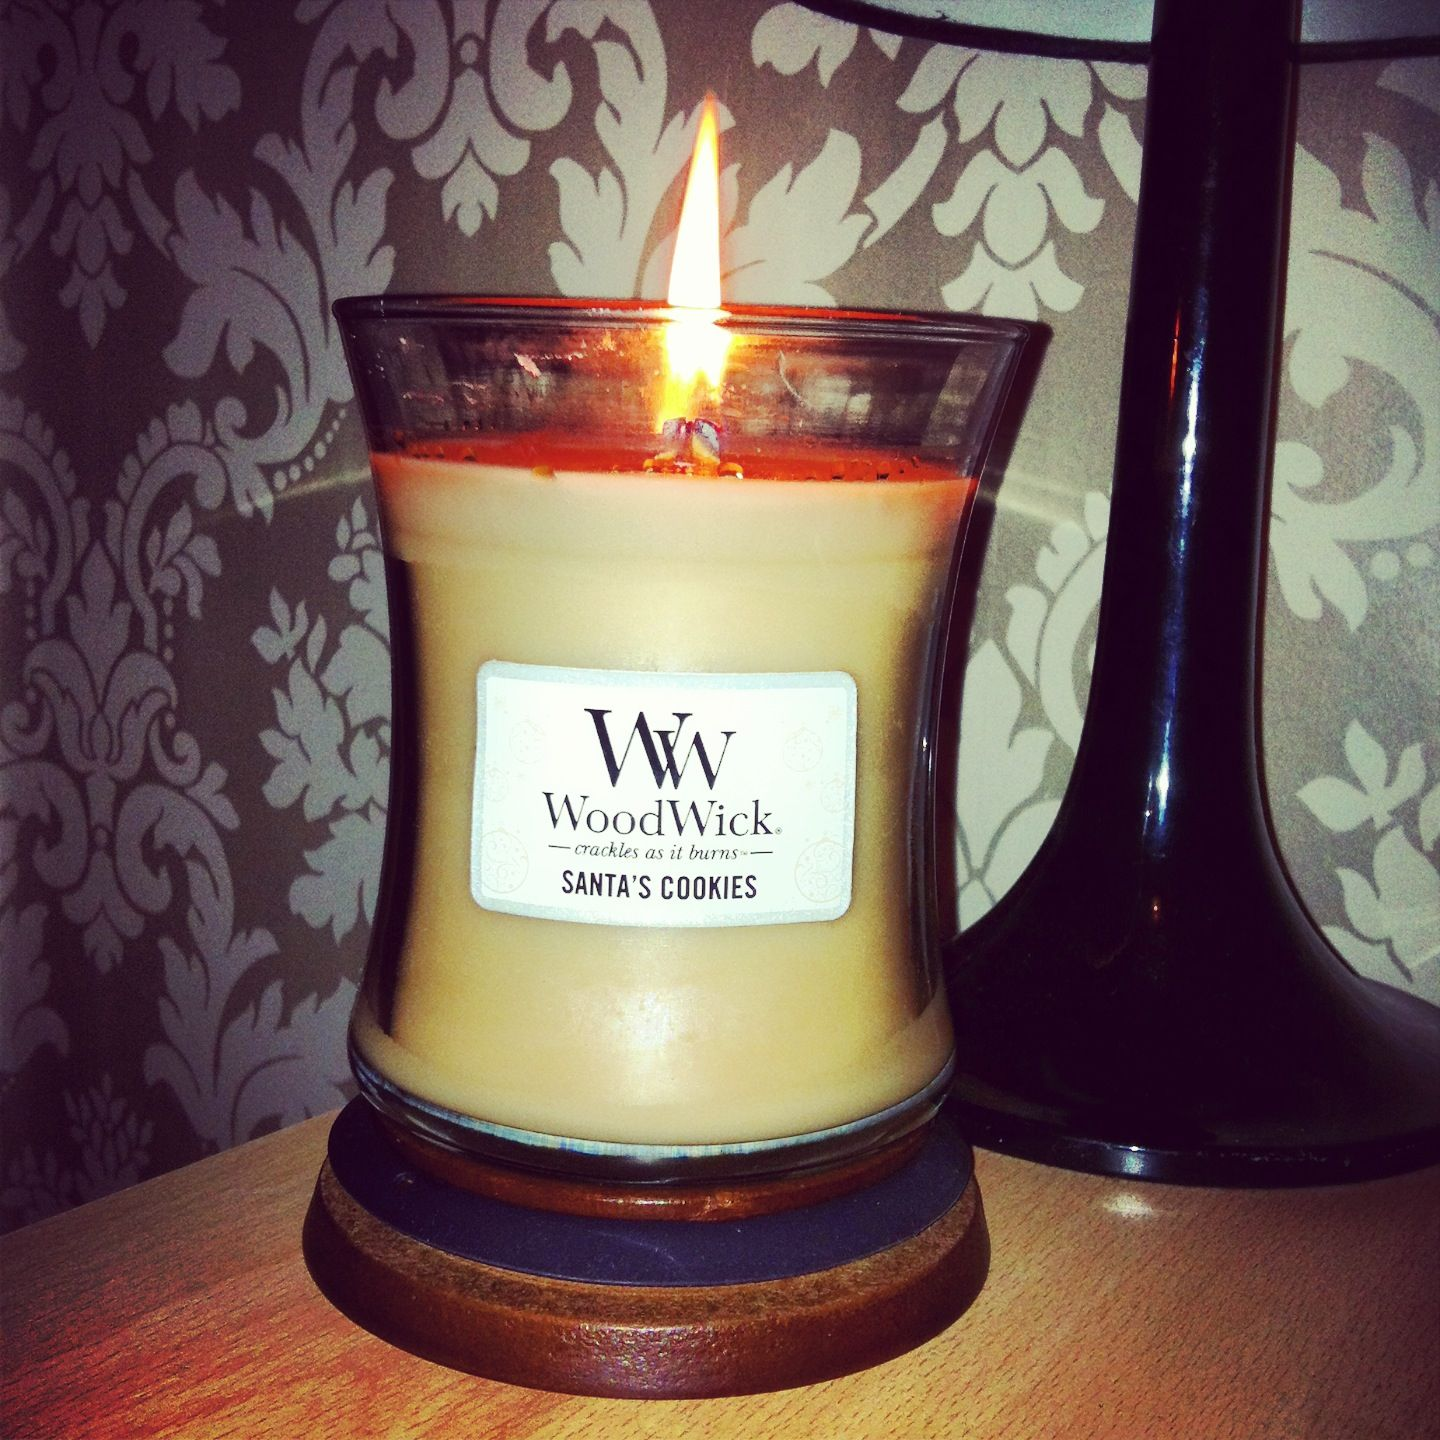 Santas Cookie Woodwick Candle So Amazing With Images Wood